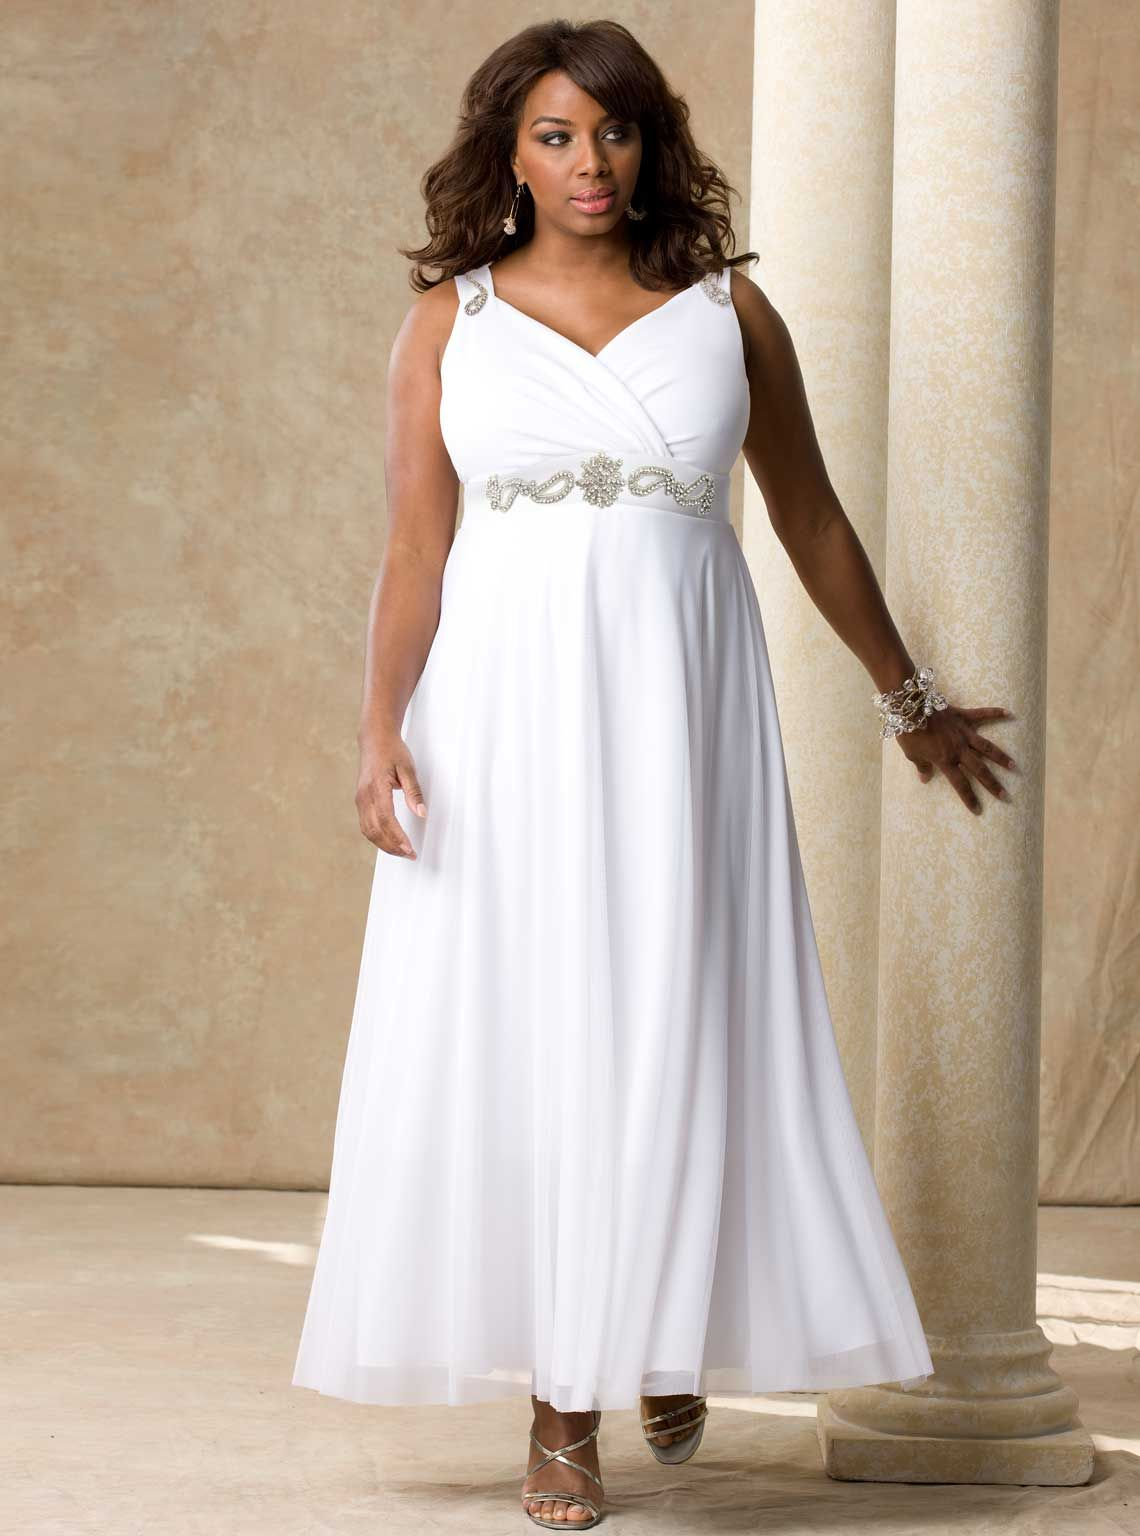 Plus Size Gowns For Real African Women Informal Wedding Dresses Bridesmaid Dresses Plus Size Casual Wedding Dress